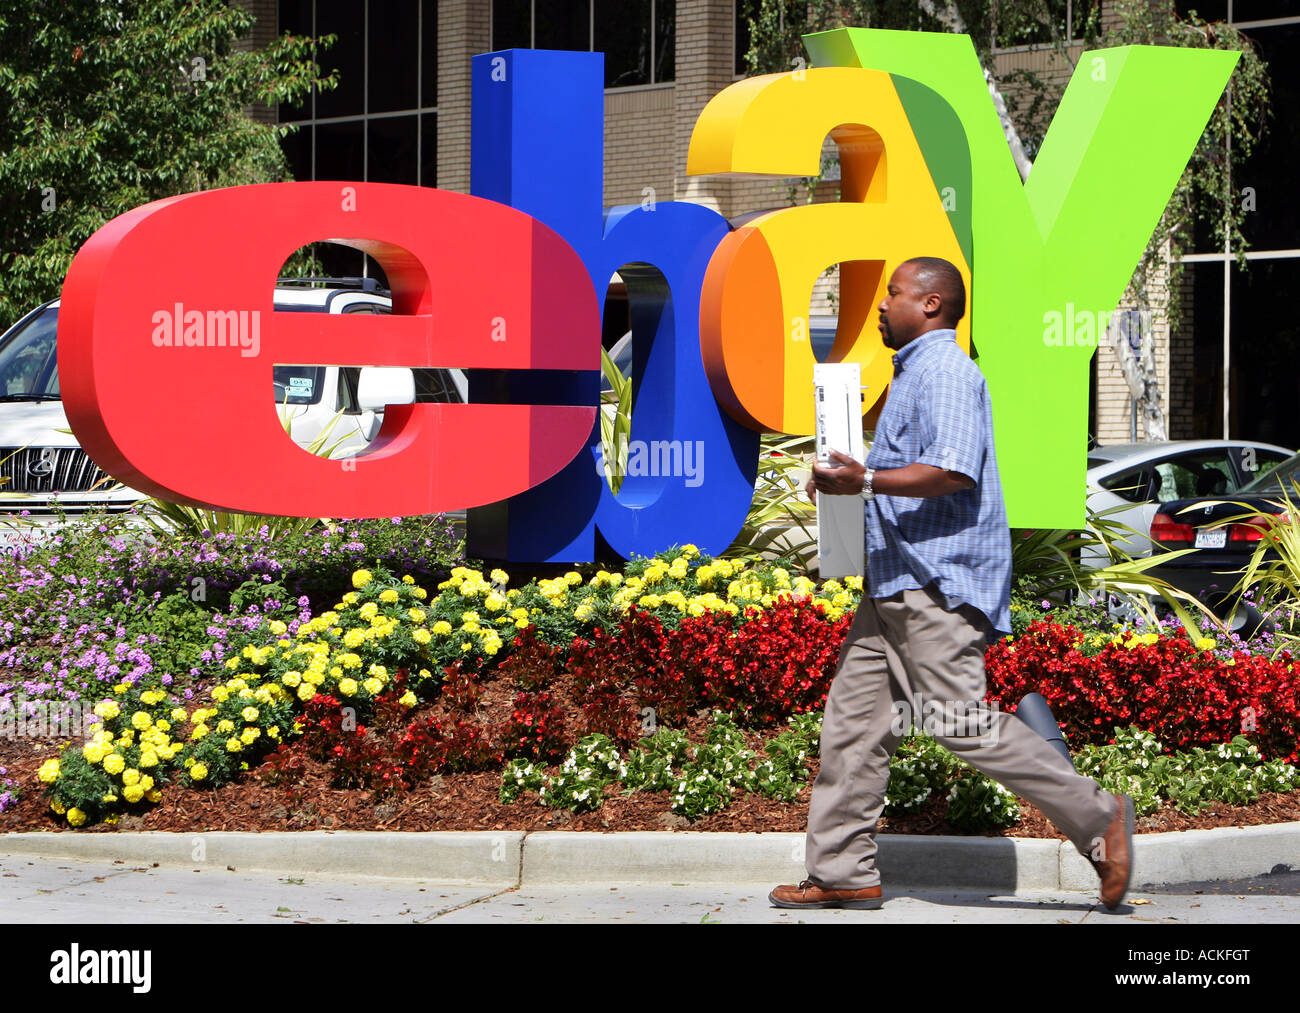 ebay headquarters in San Jose California, an employee carries a computer in front of the ebay logo - Stock Image